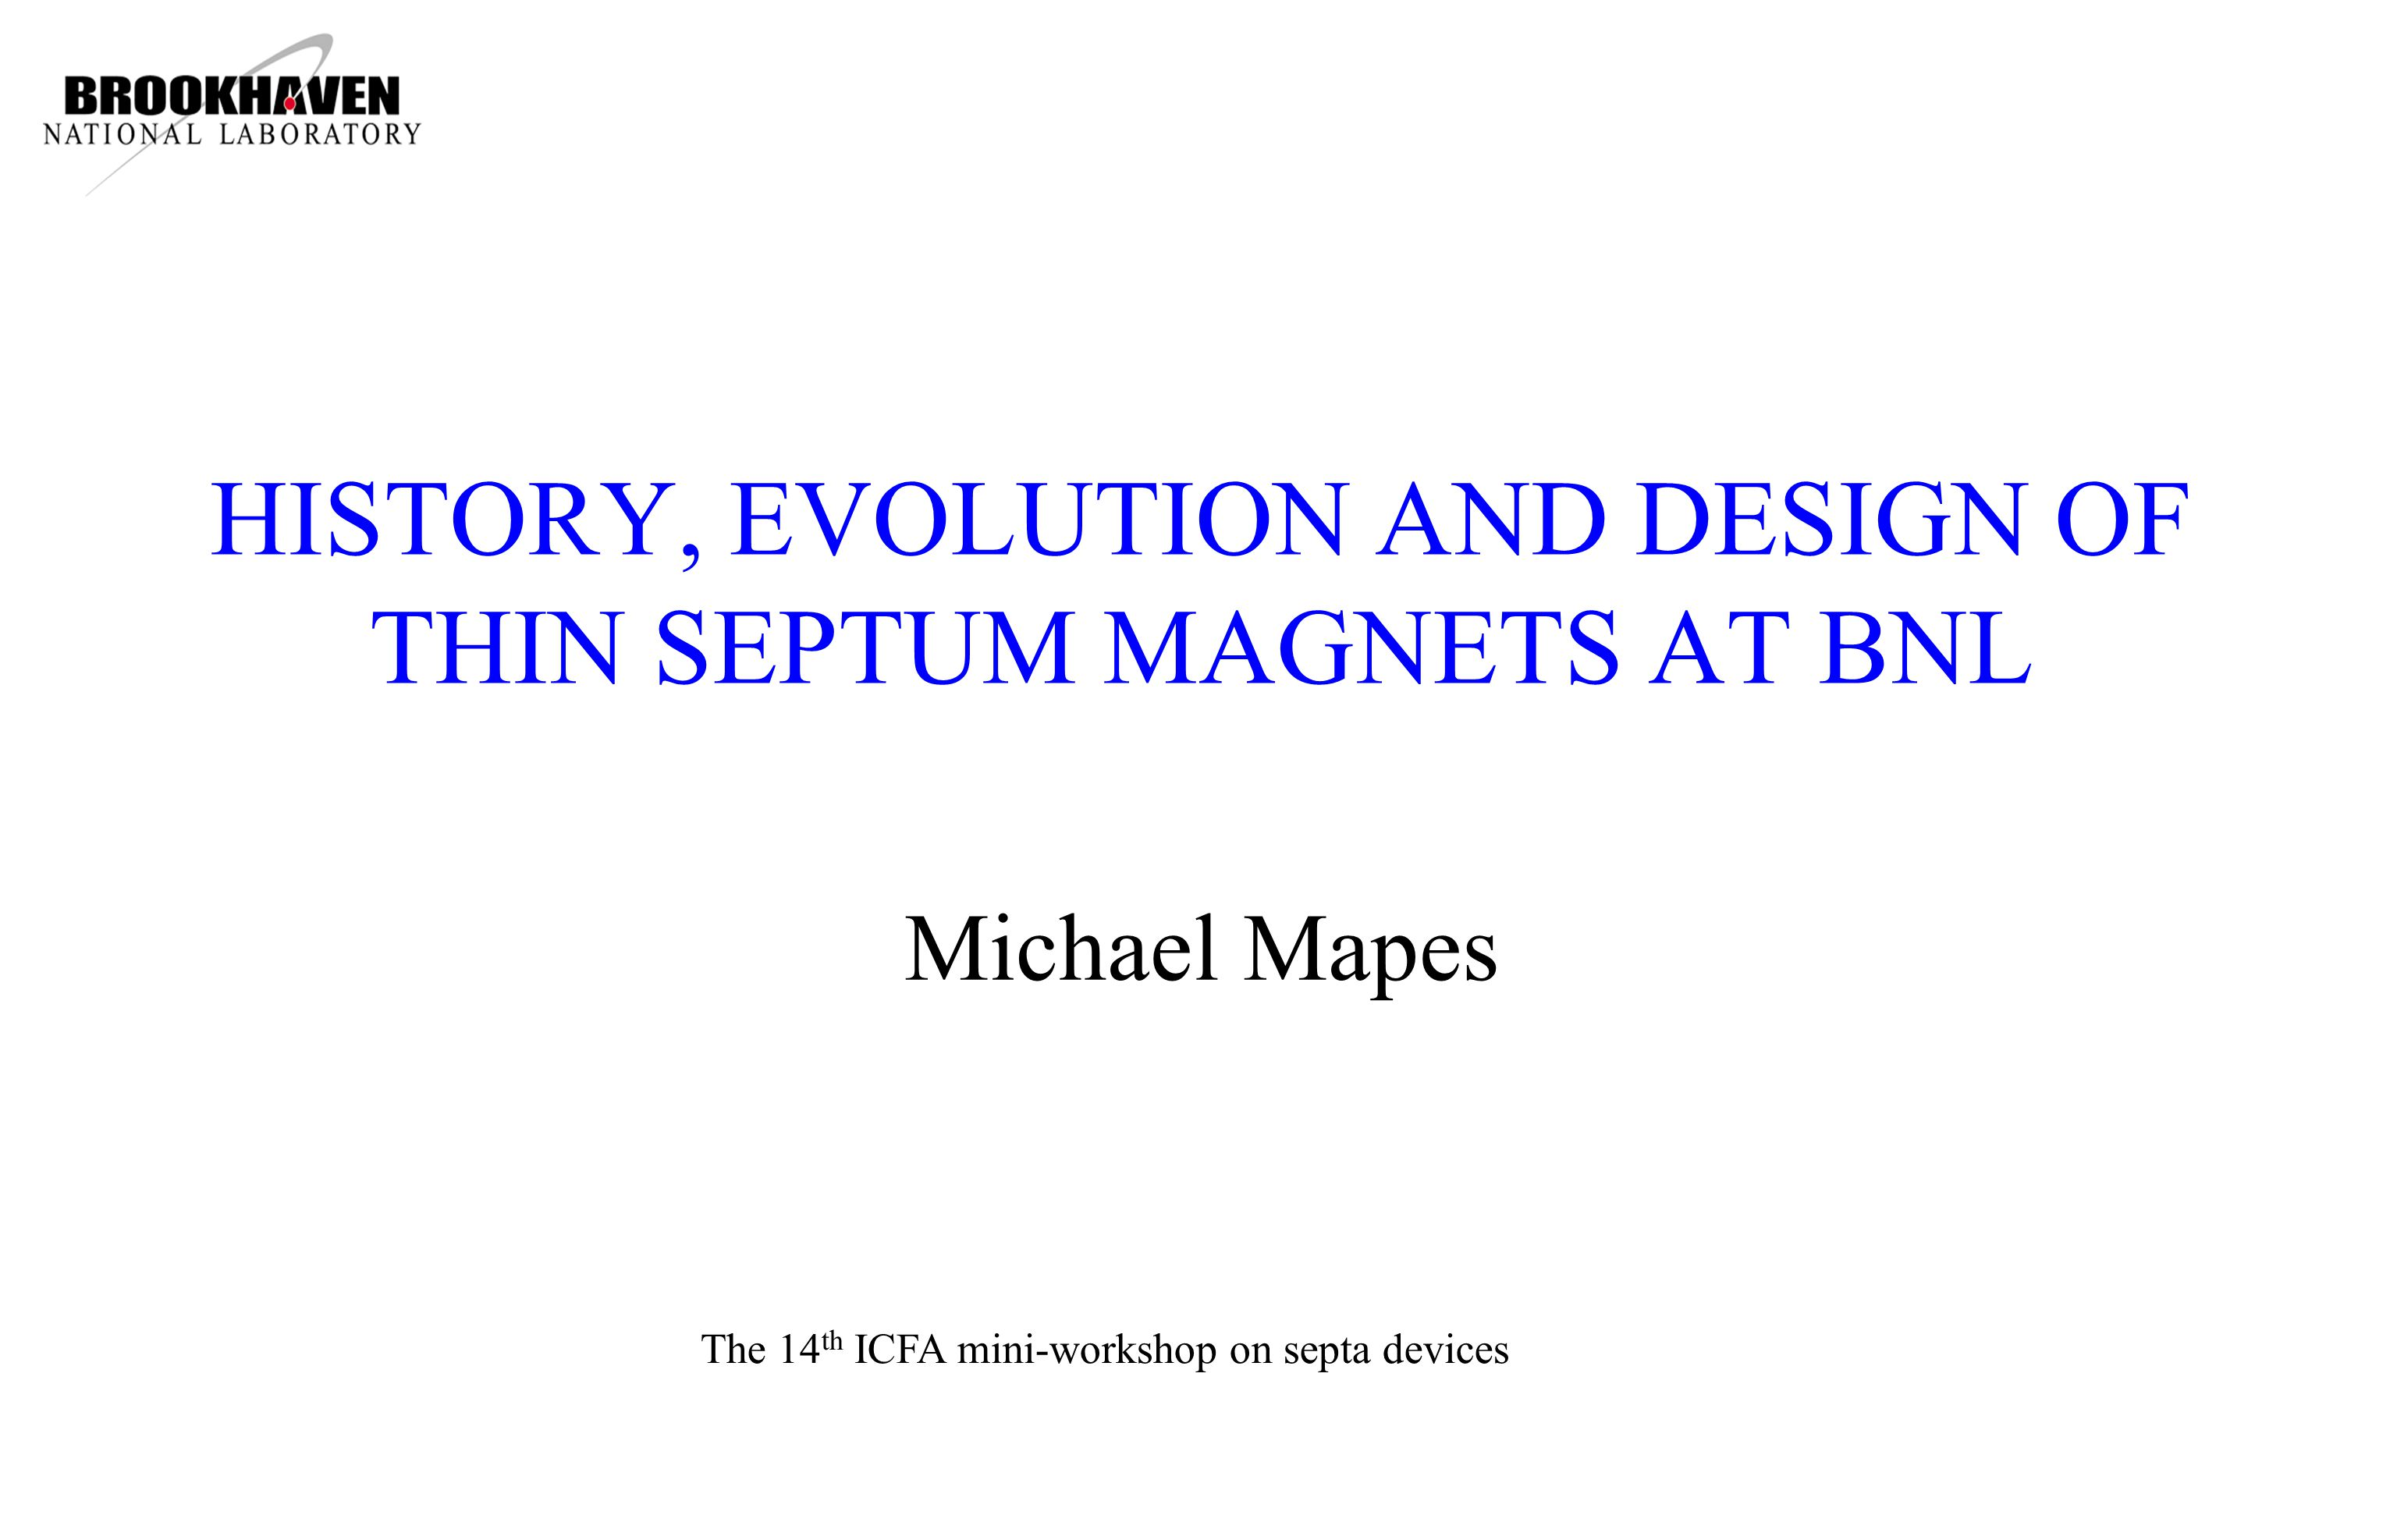 HISTORY, EVOLUTION AND DESIGN OF THIN SEPTUM MAGNETS AT BNL Michael Mapes The 14 th ICFA mini-workshop on septa devices